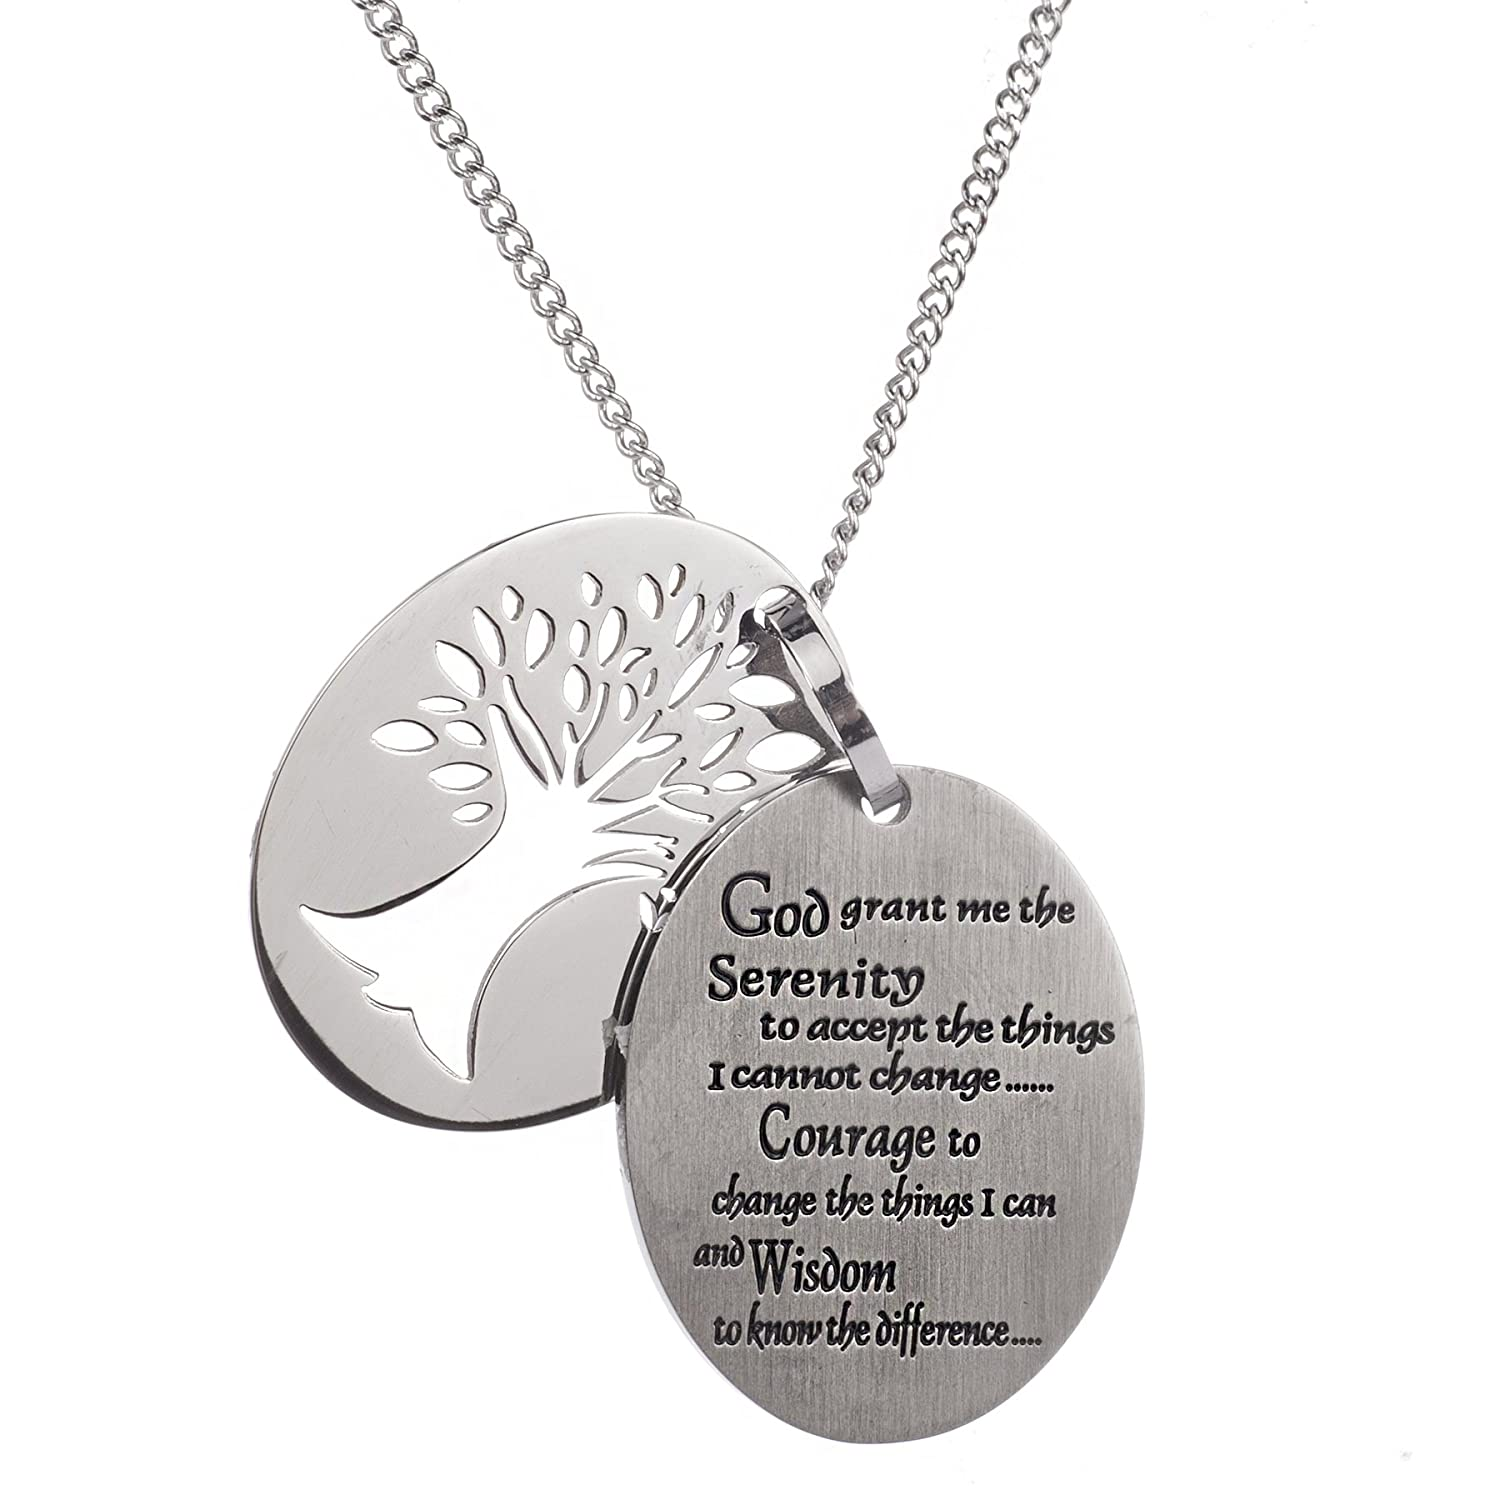 High Polished Stainless Steel Tree of Life Pendant, Serenity Prayer Necklace